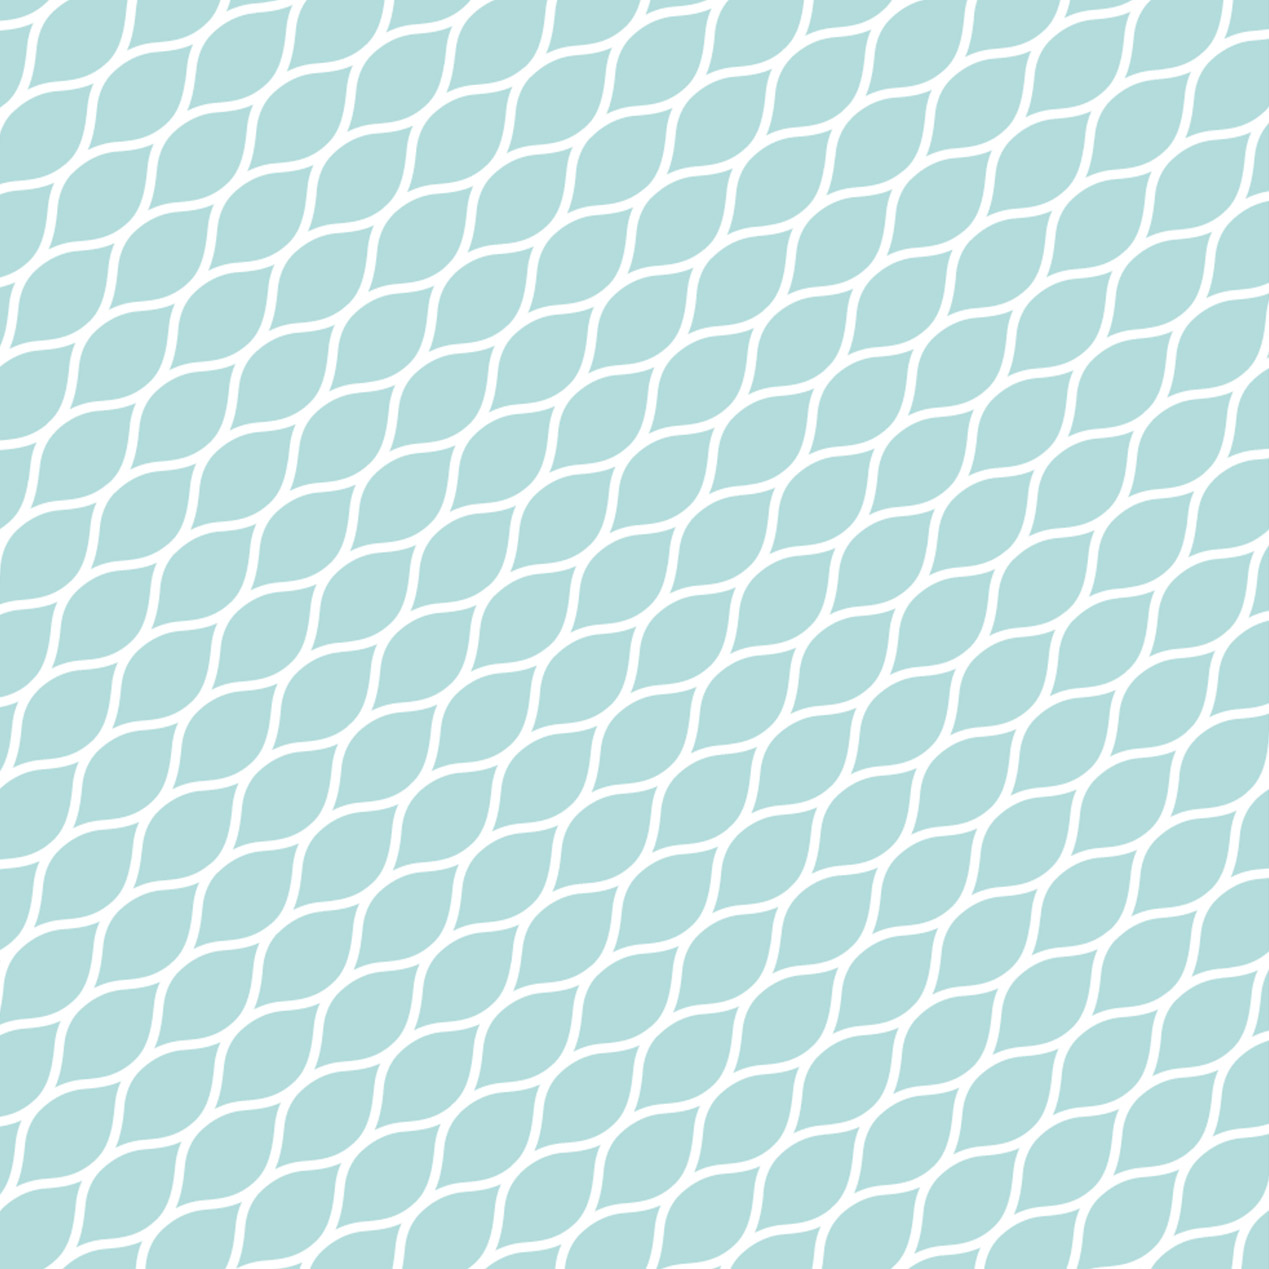 image regarding Printable Patterned Paper known as Fish Web Routine Printable Origami Paper